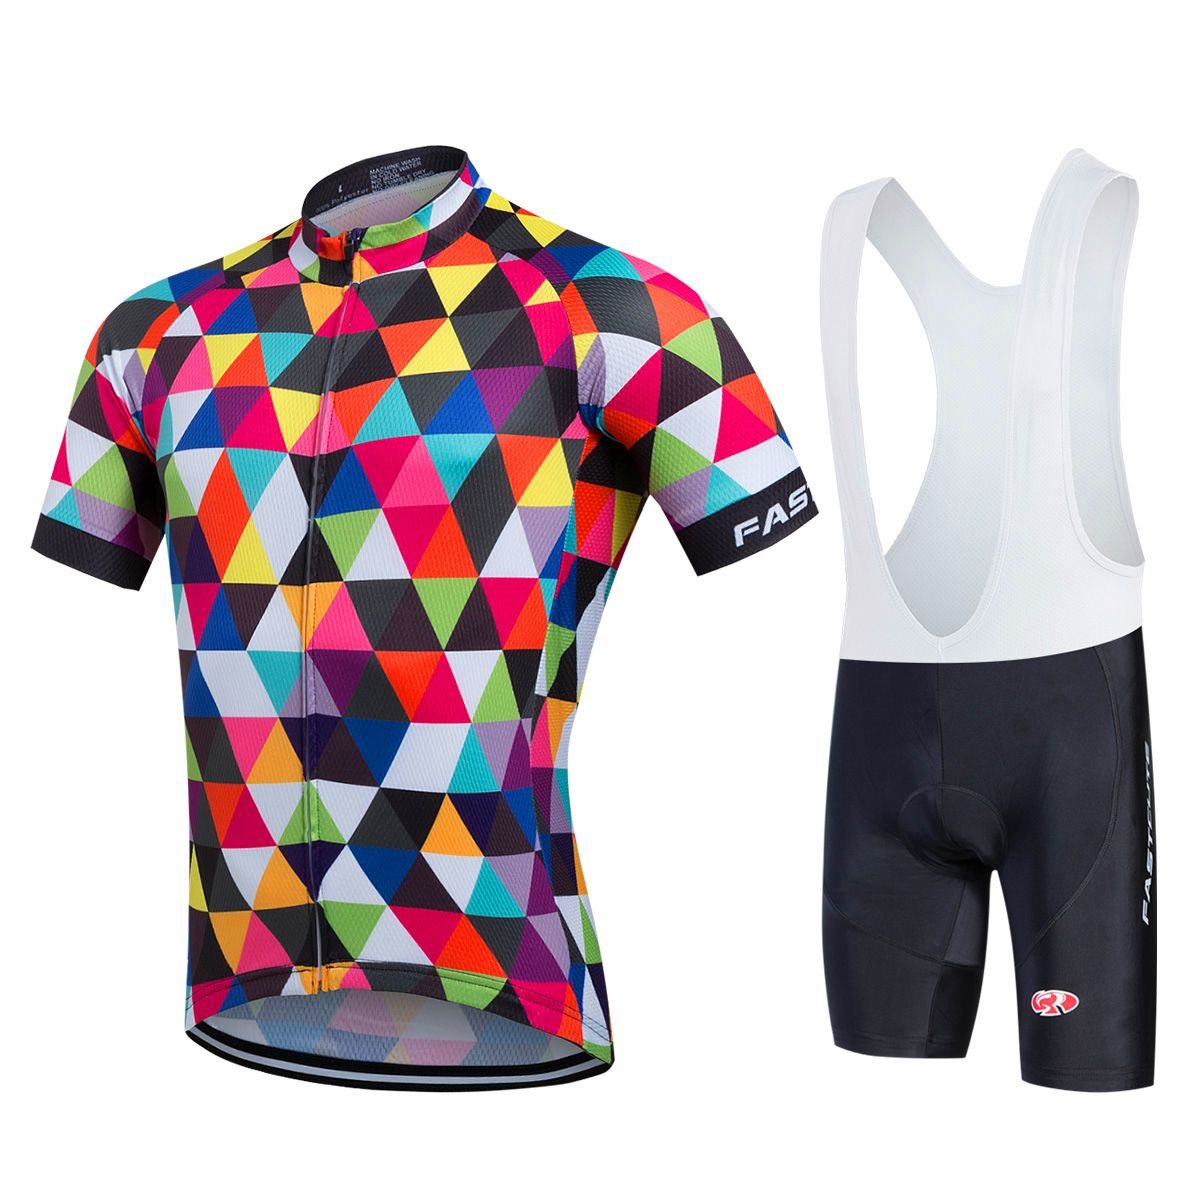 FASTCUTE Cycling Jersey Multicolor Bicycle Bike Short Sleeve Sportswear Cycling Clothing maillot Cycling Jerseys set